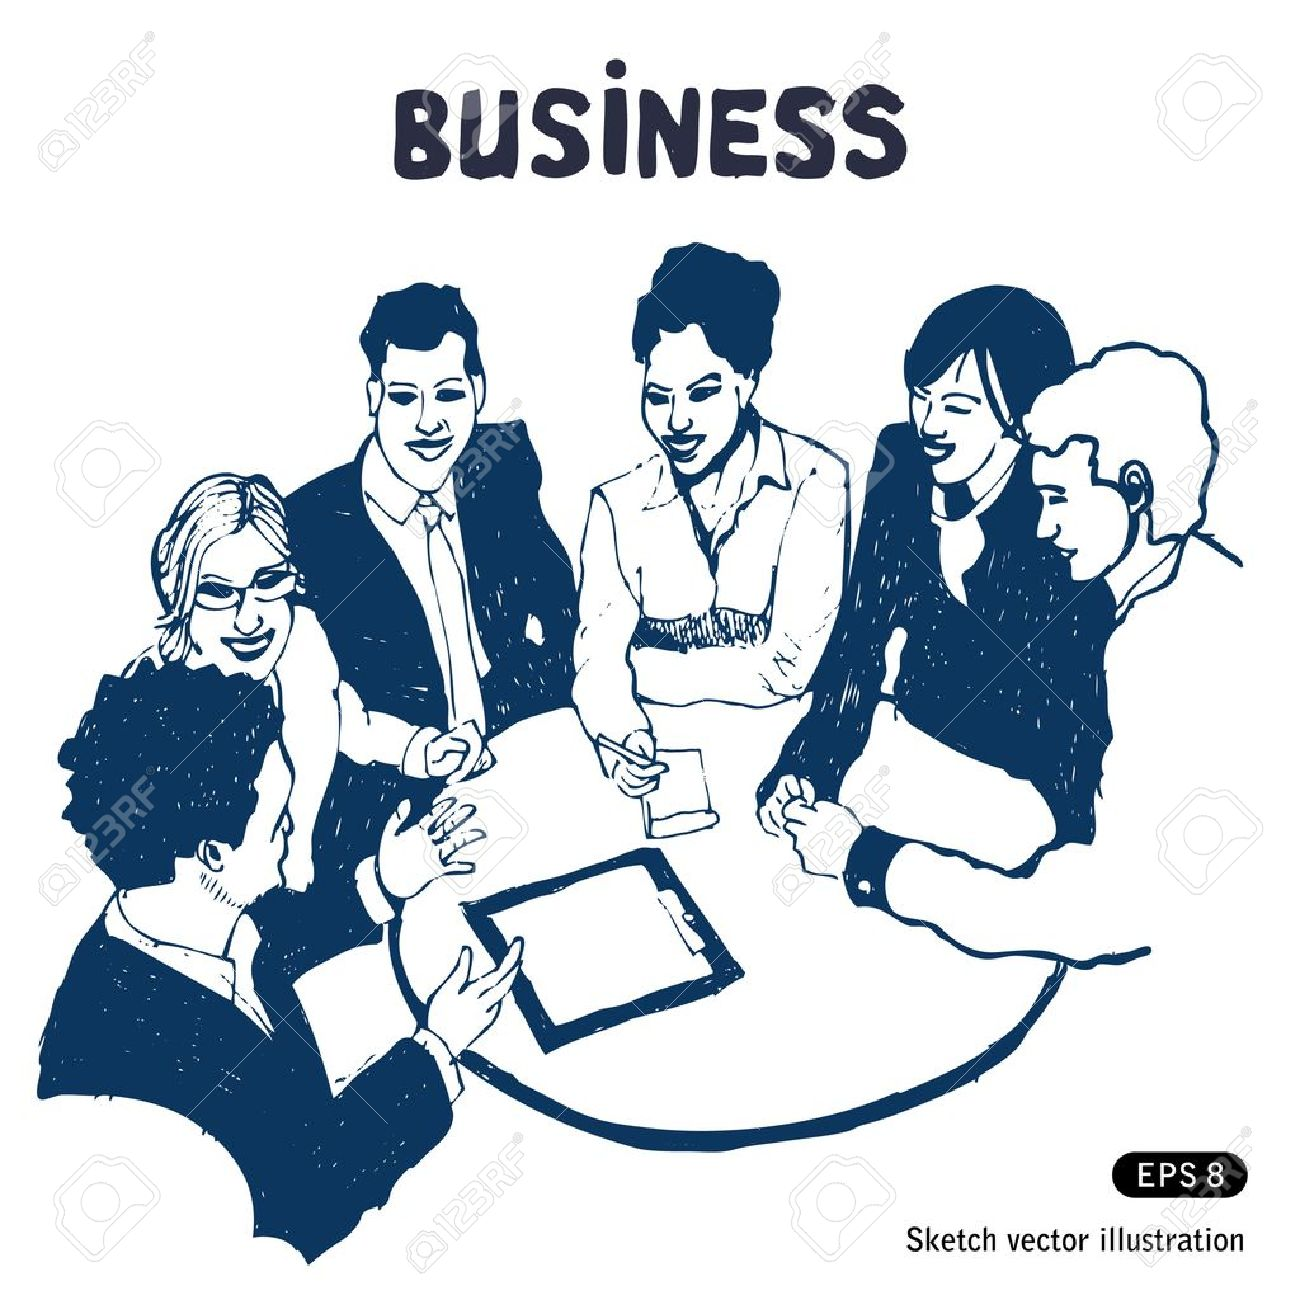 Business group portrait - Six business people working together Stock Vector - 14059392